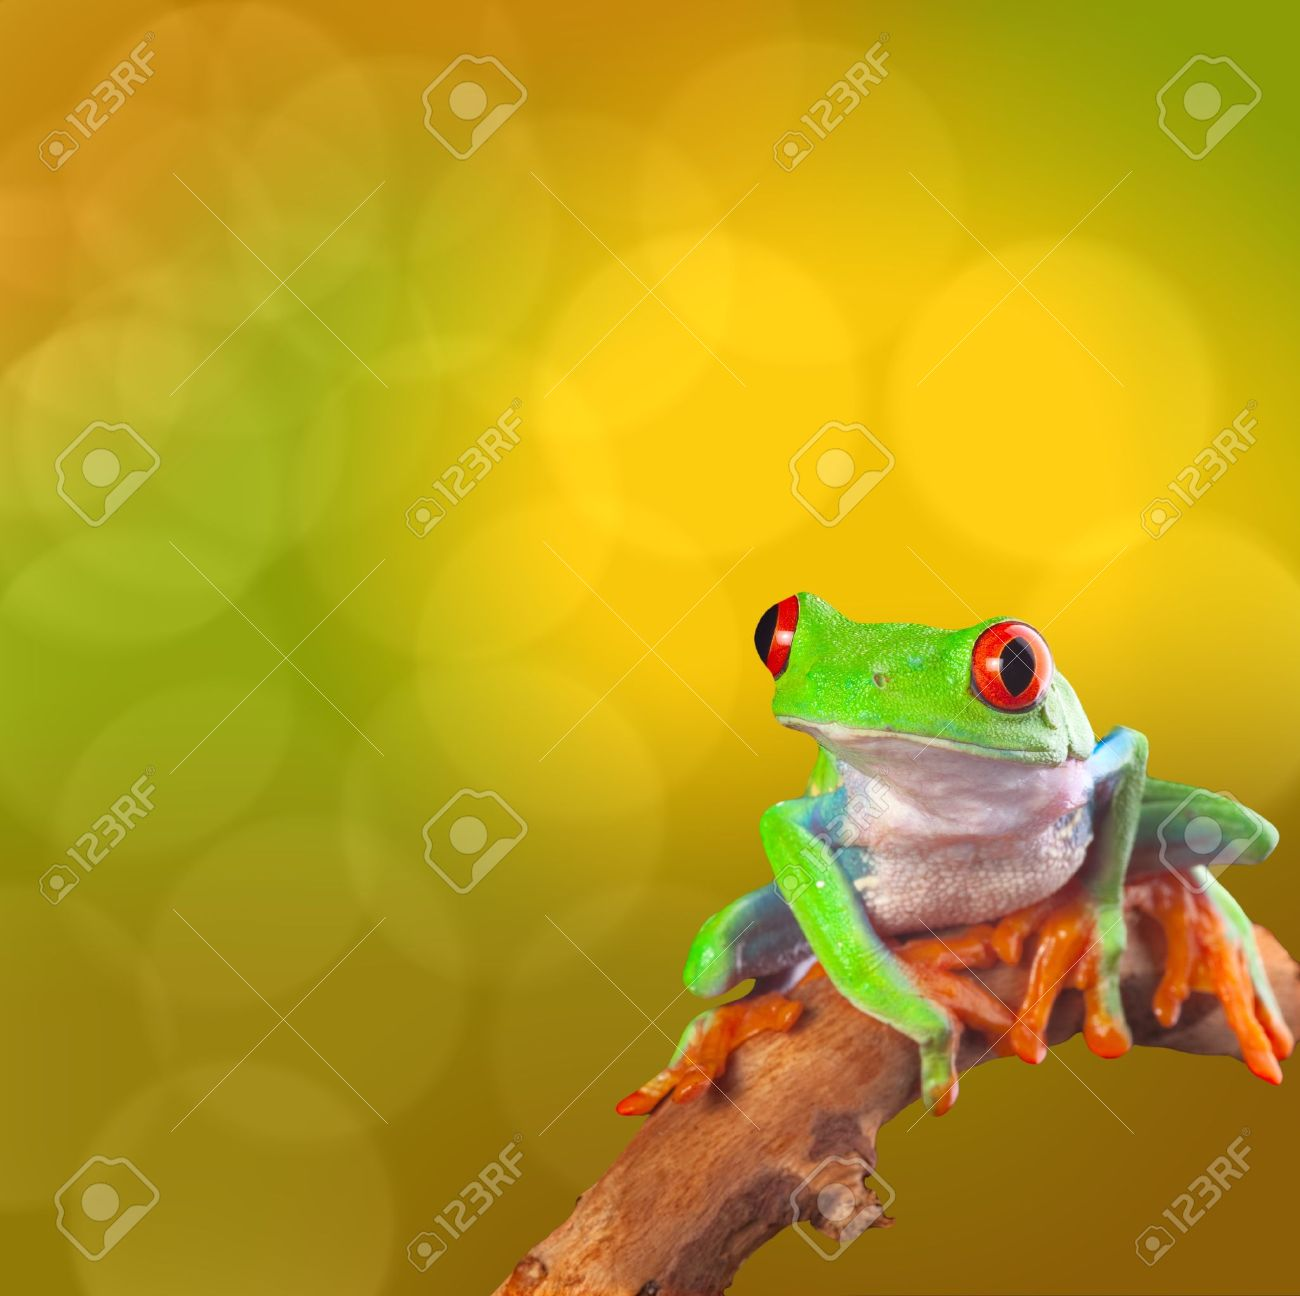 Red eyed tree frog from Costa Rica rain forest. Beautiful tropical treefrog on a bright background with copy space. Exotic rainforest animal with cute and funny looks. Agalychnis callidryas - 19561460